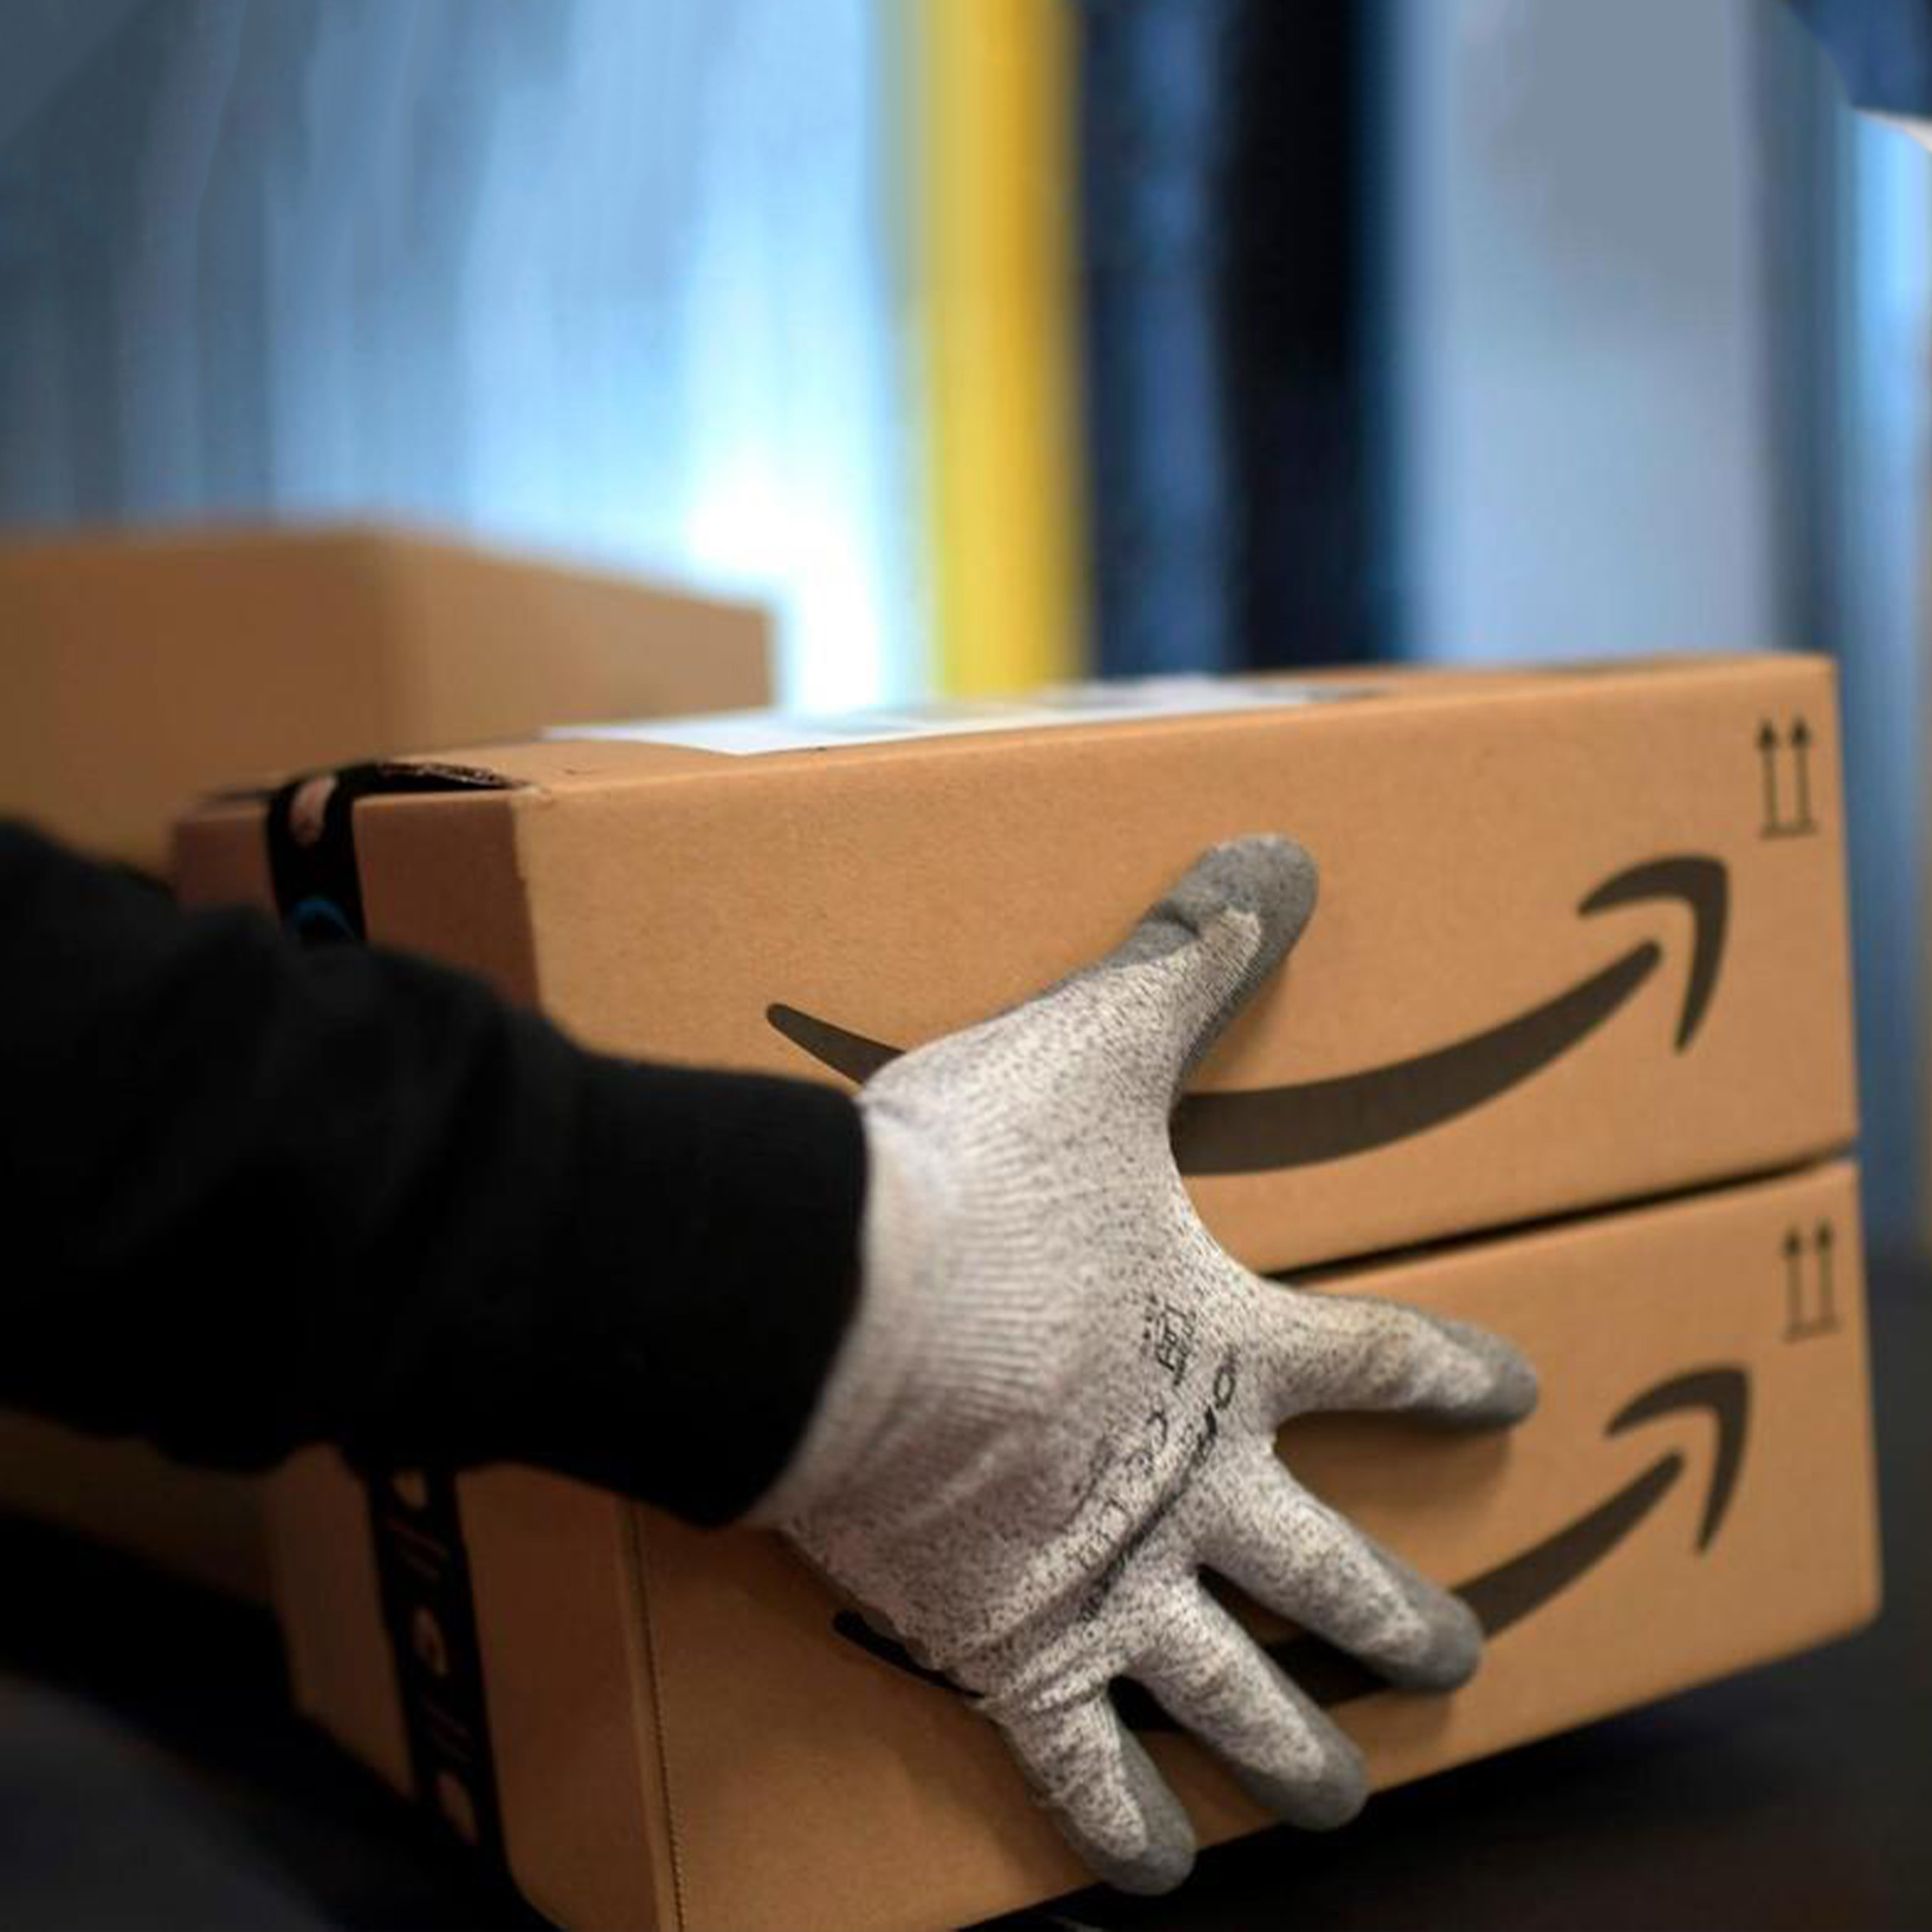 Global e-commerce to expand by $1.4tn by 2025